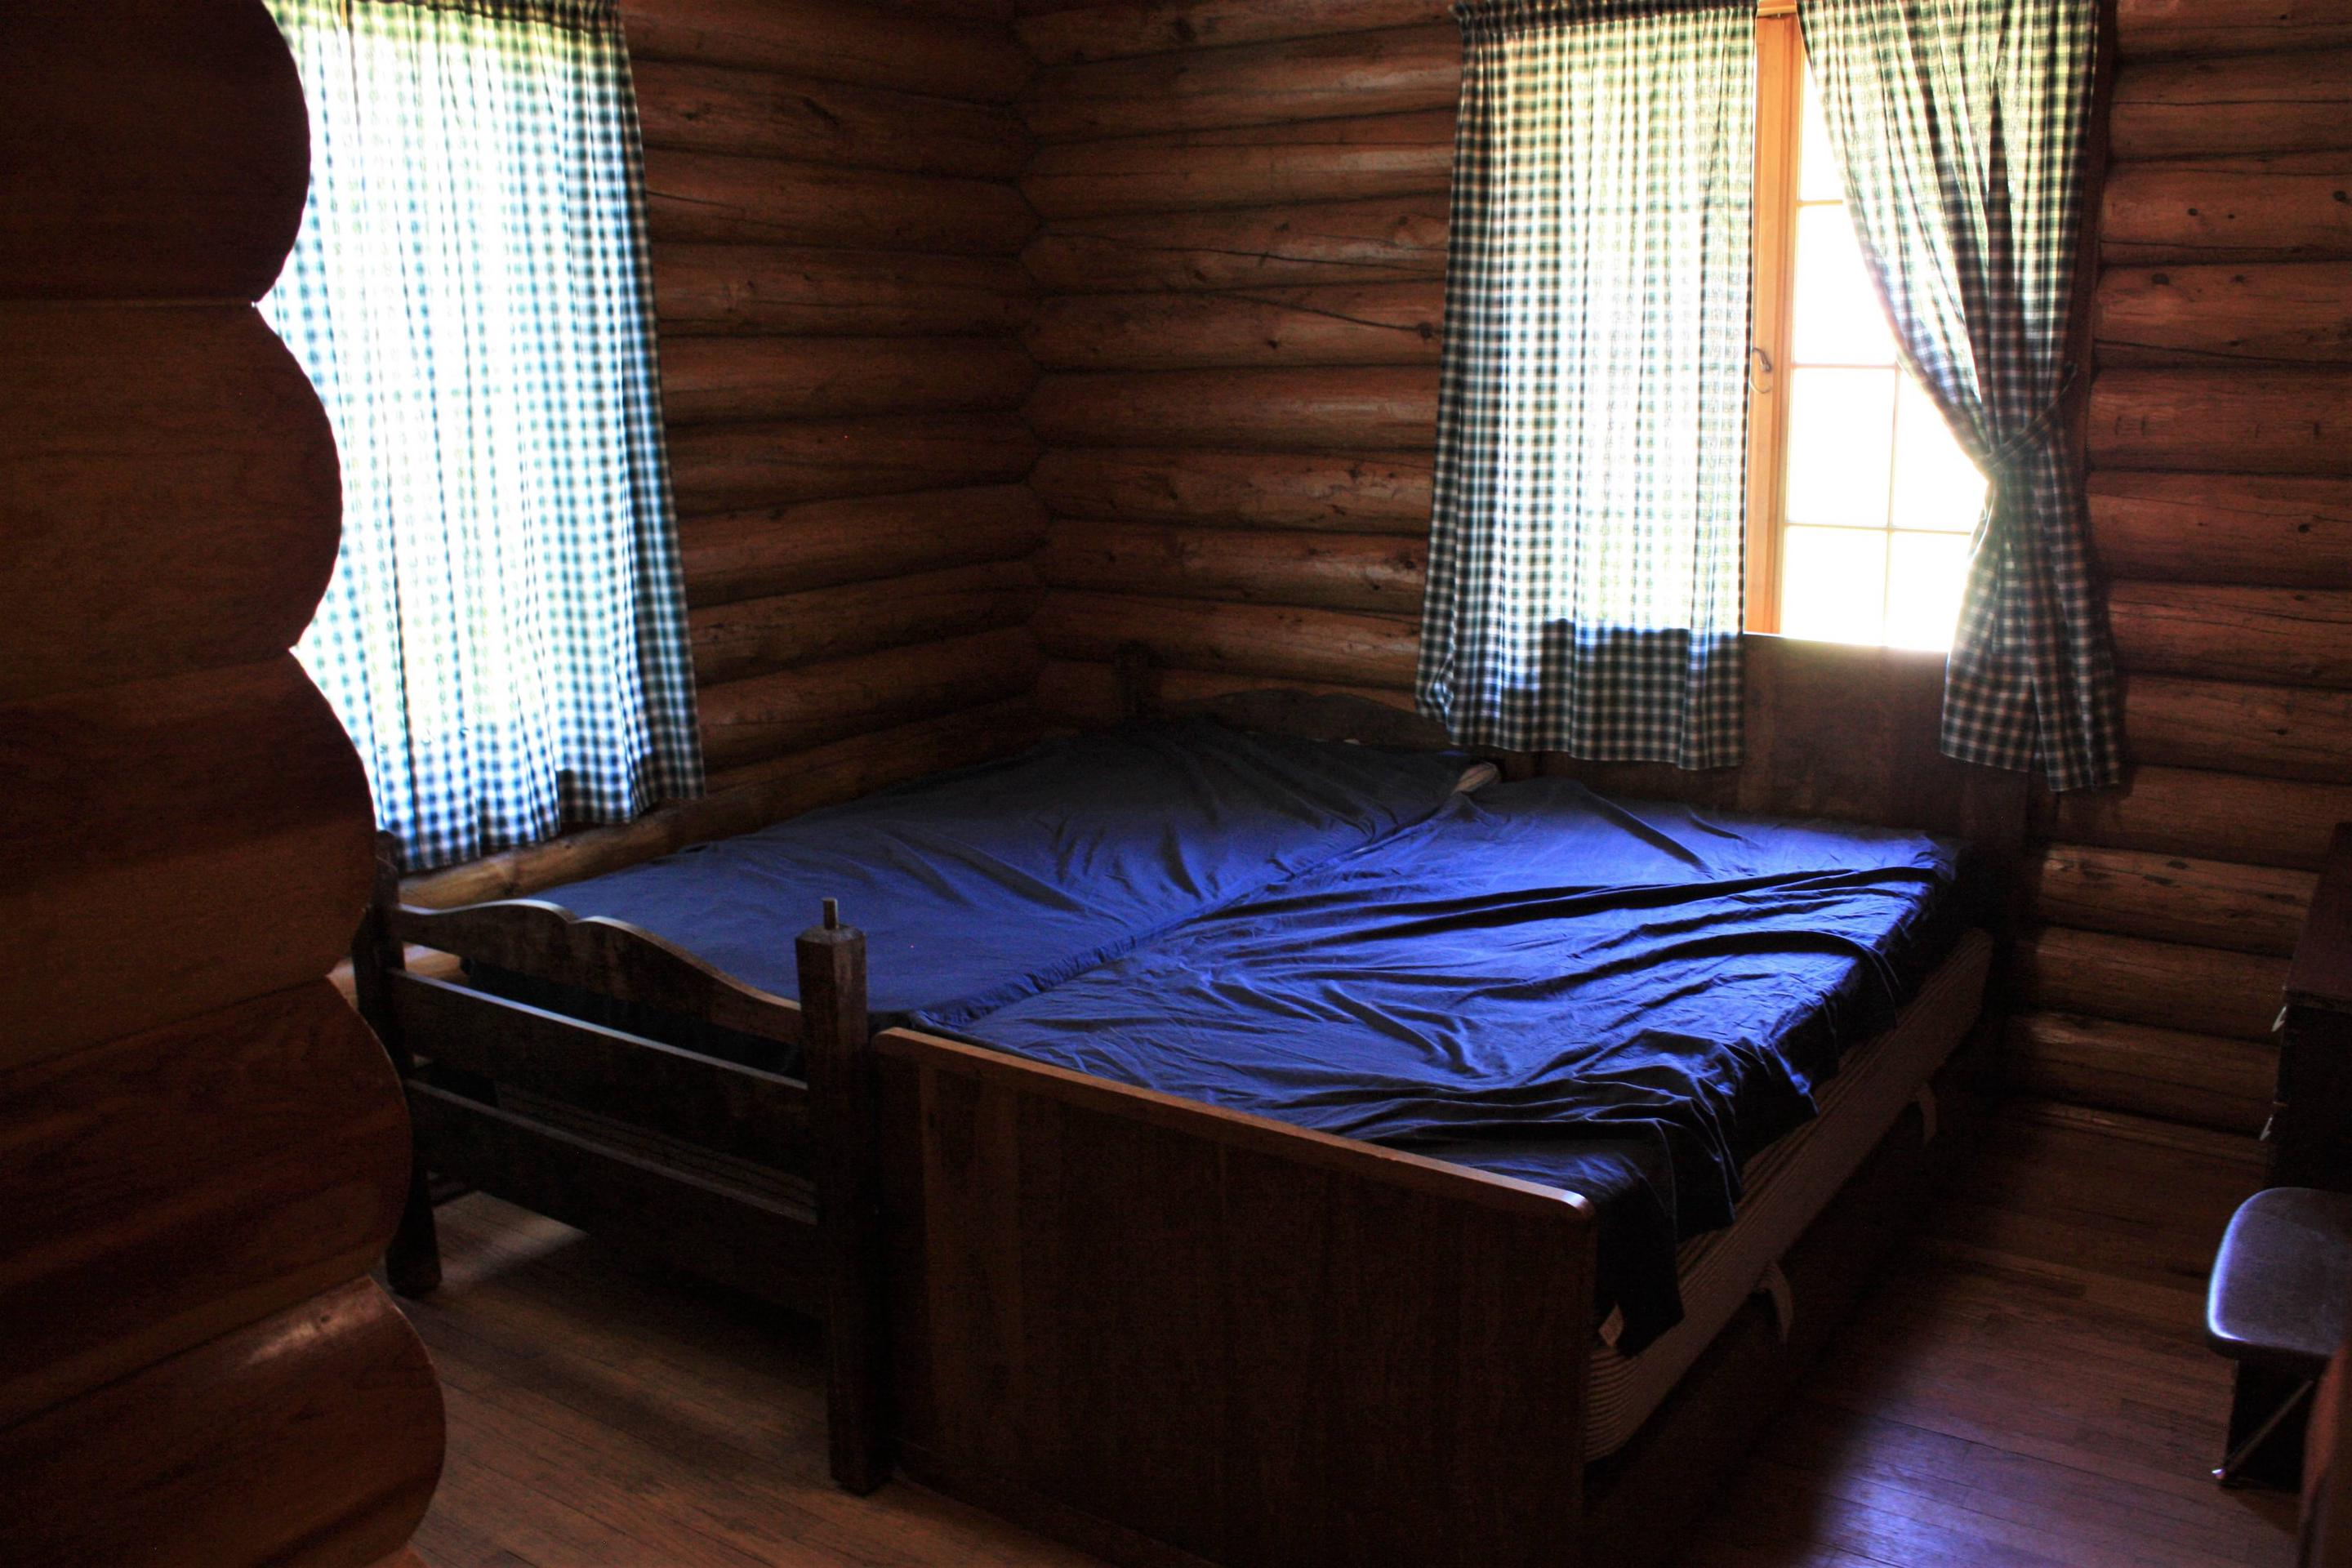 Keystone Ranger Station bedroom2Keystone Ranger Station bedroom 2